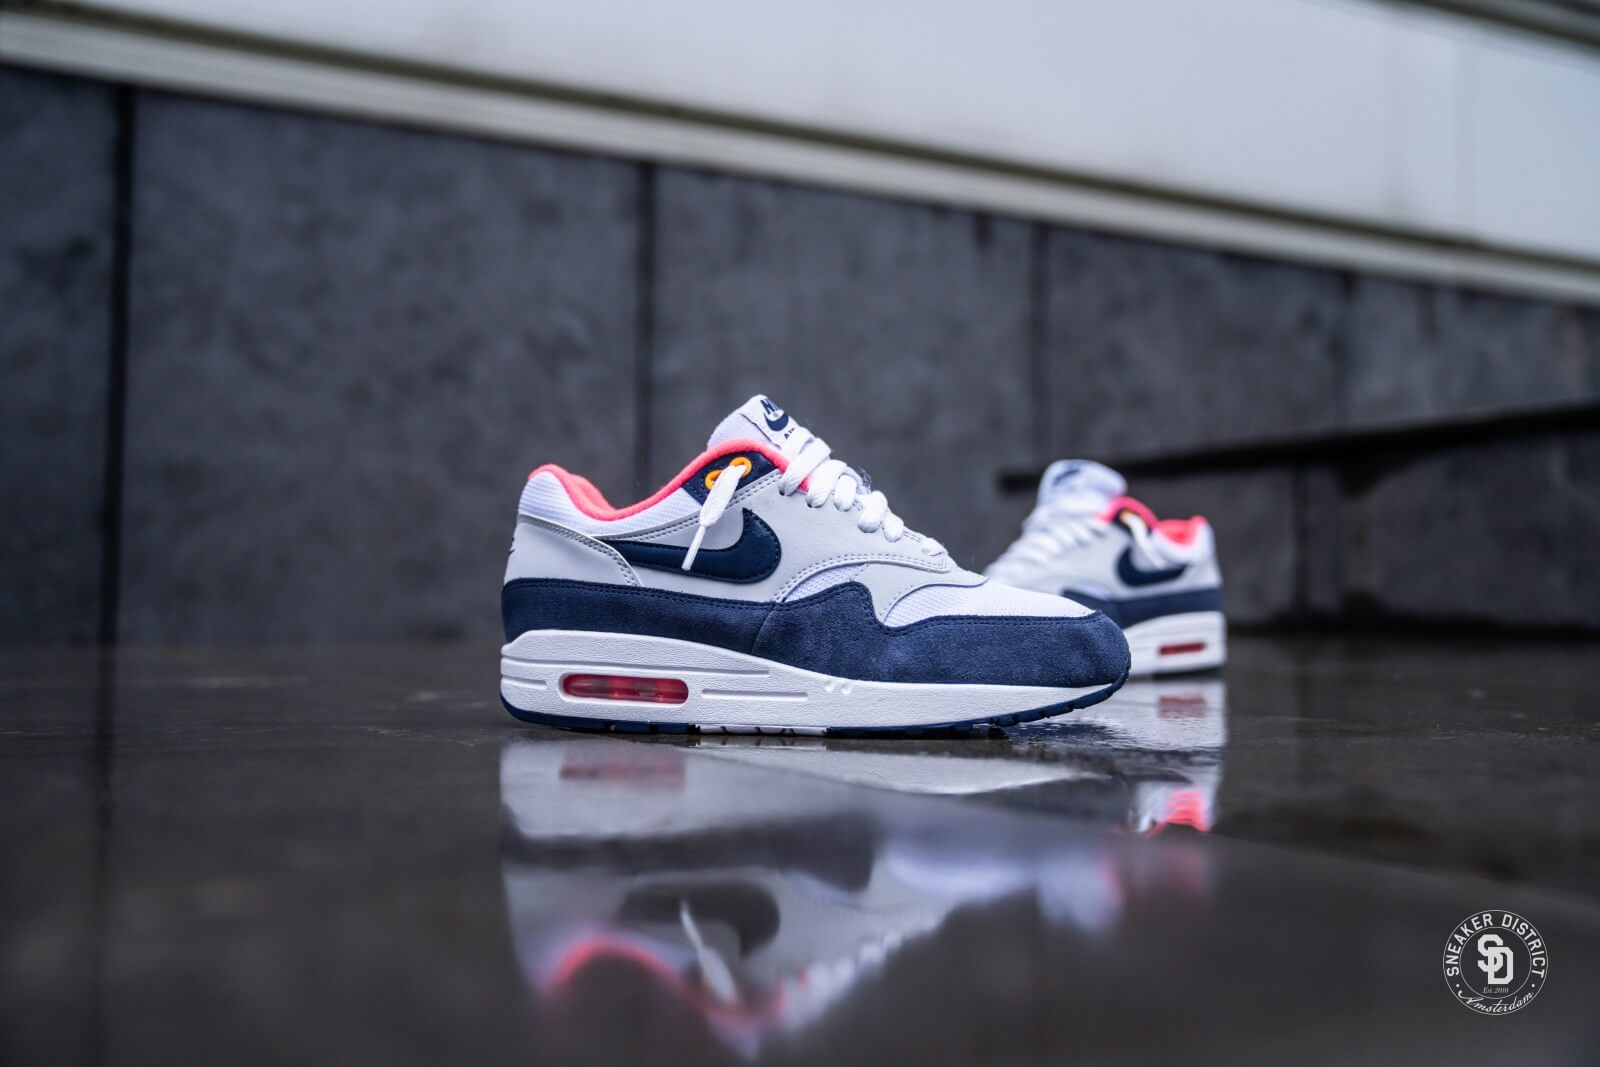 Nike Air Max 1 White/Midnight Navy